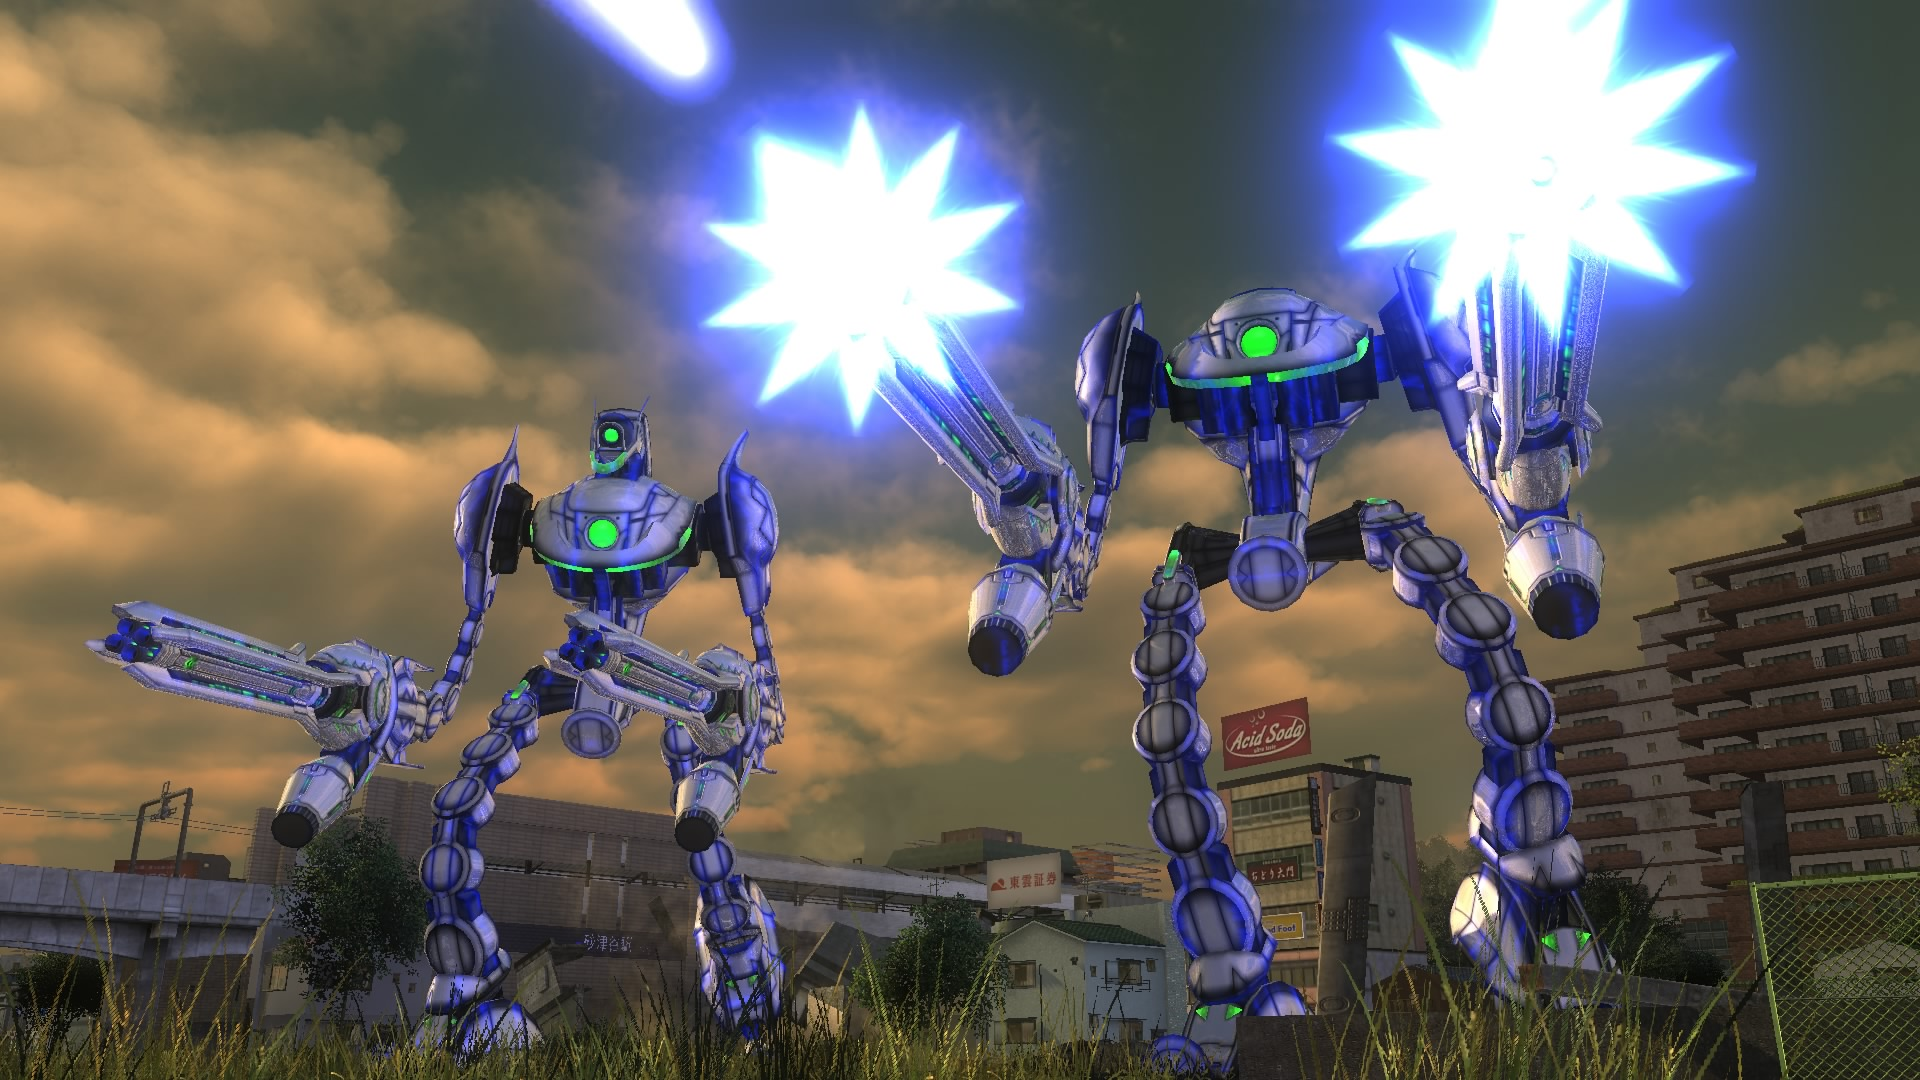 The Ultimate Best Mech Games To Play in 2019 (Top 10